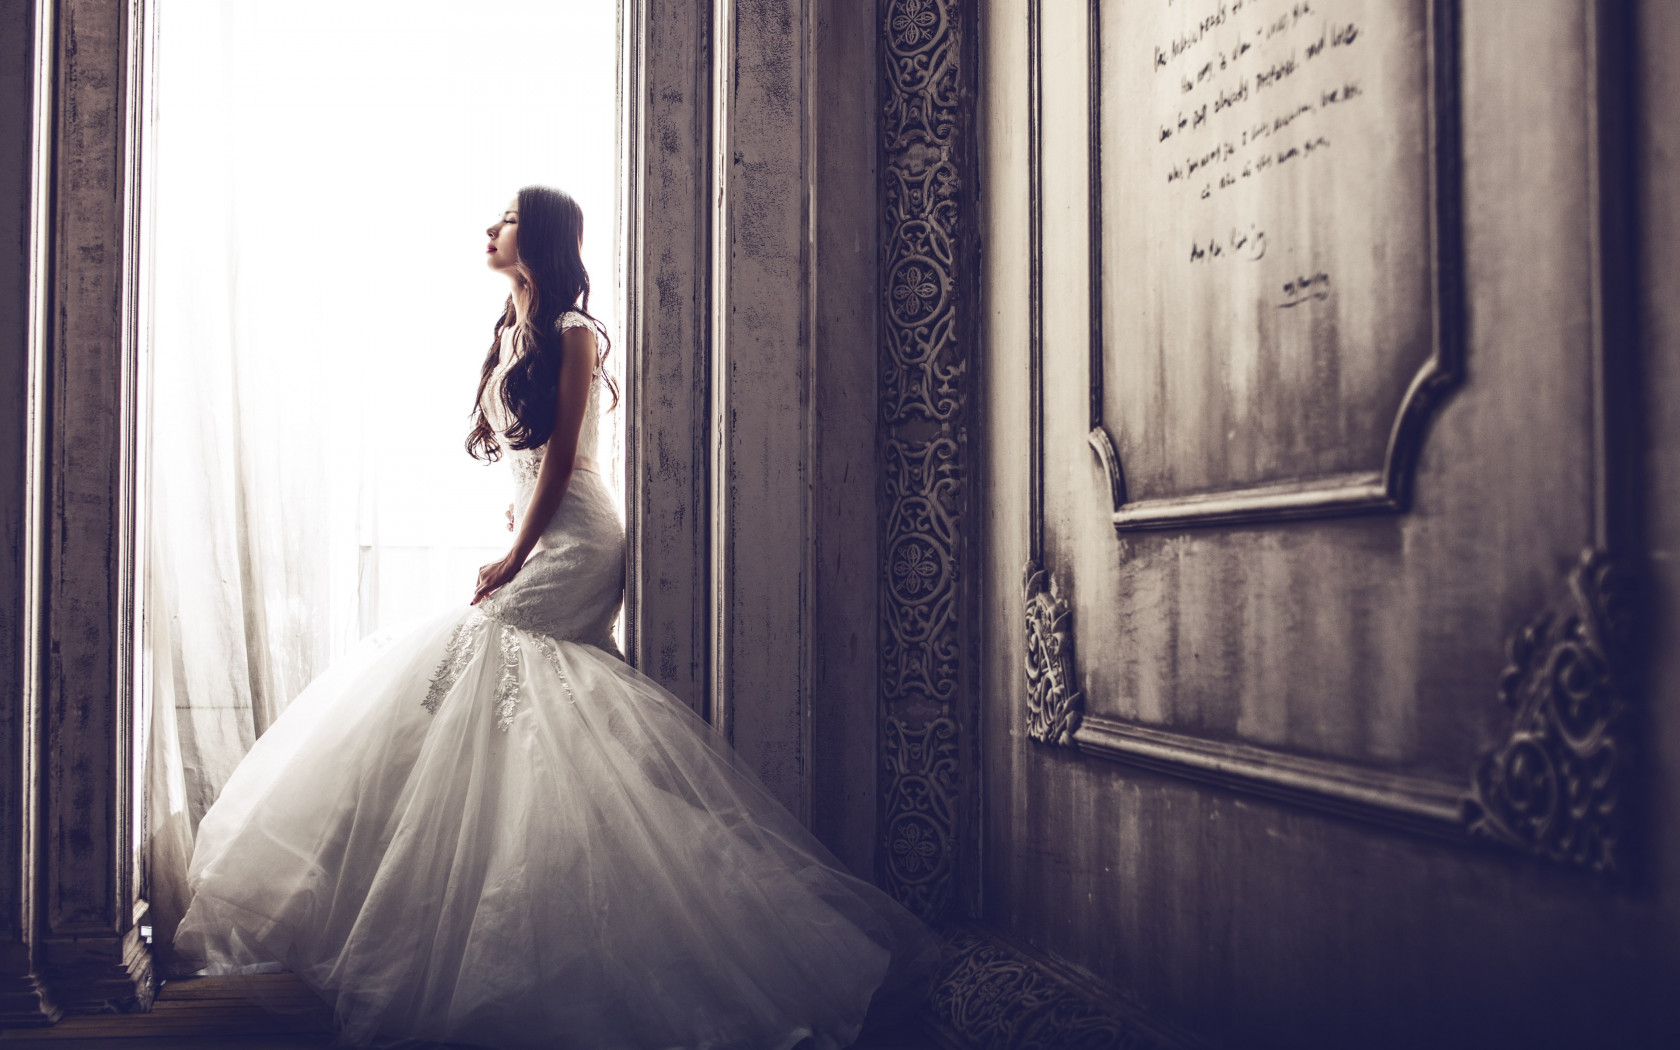 Bride in castle wallpaper 1680x1050